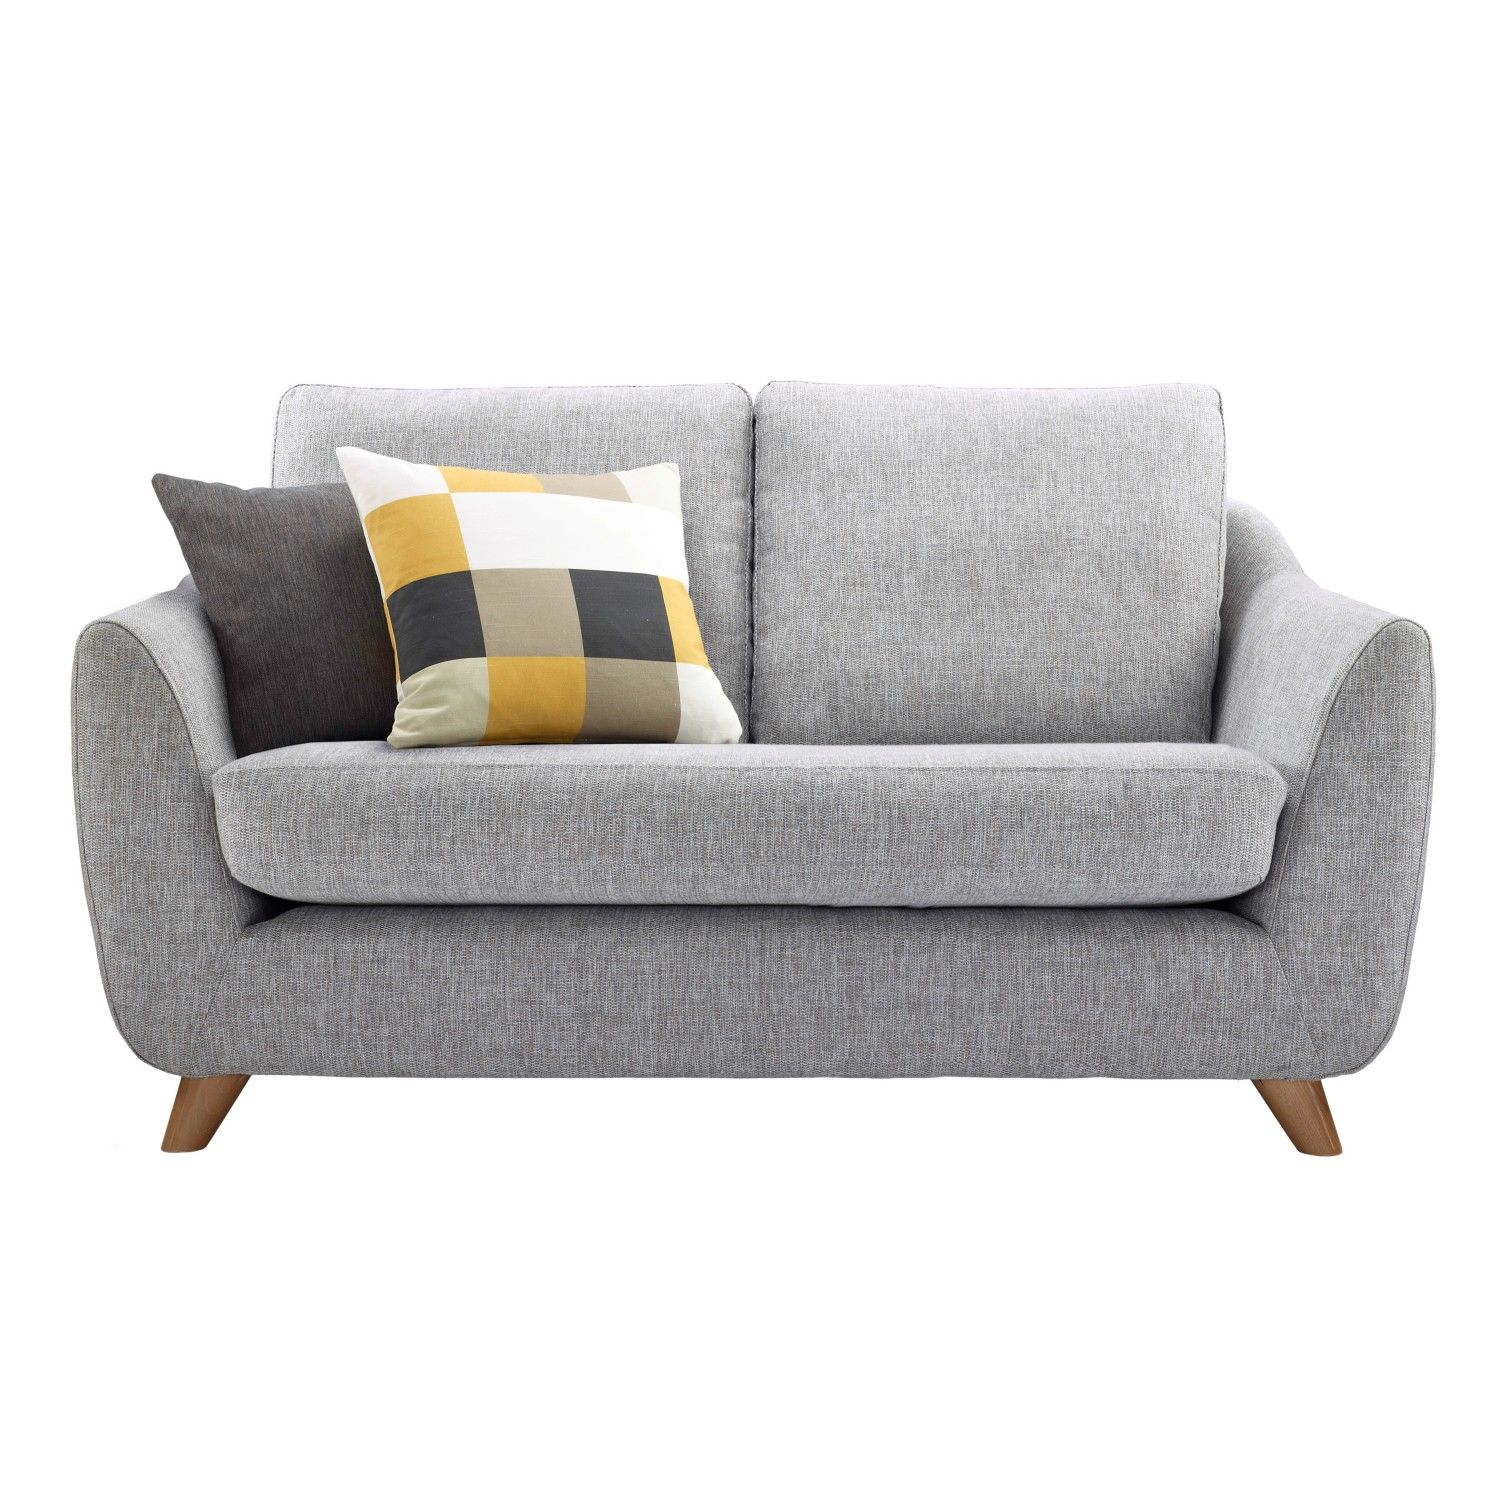 Cheap Small Couches For Small Spaces